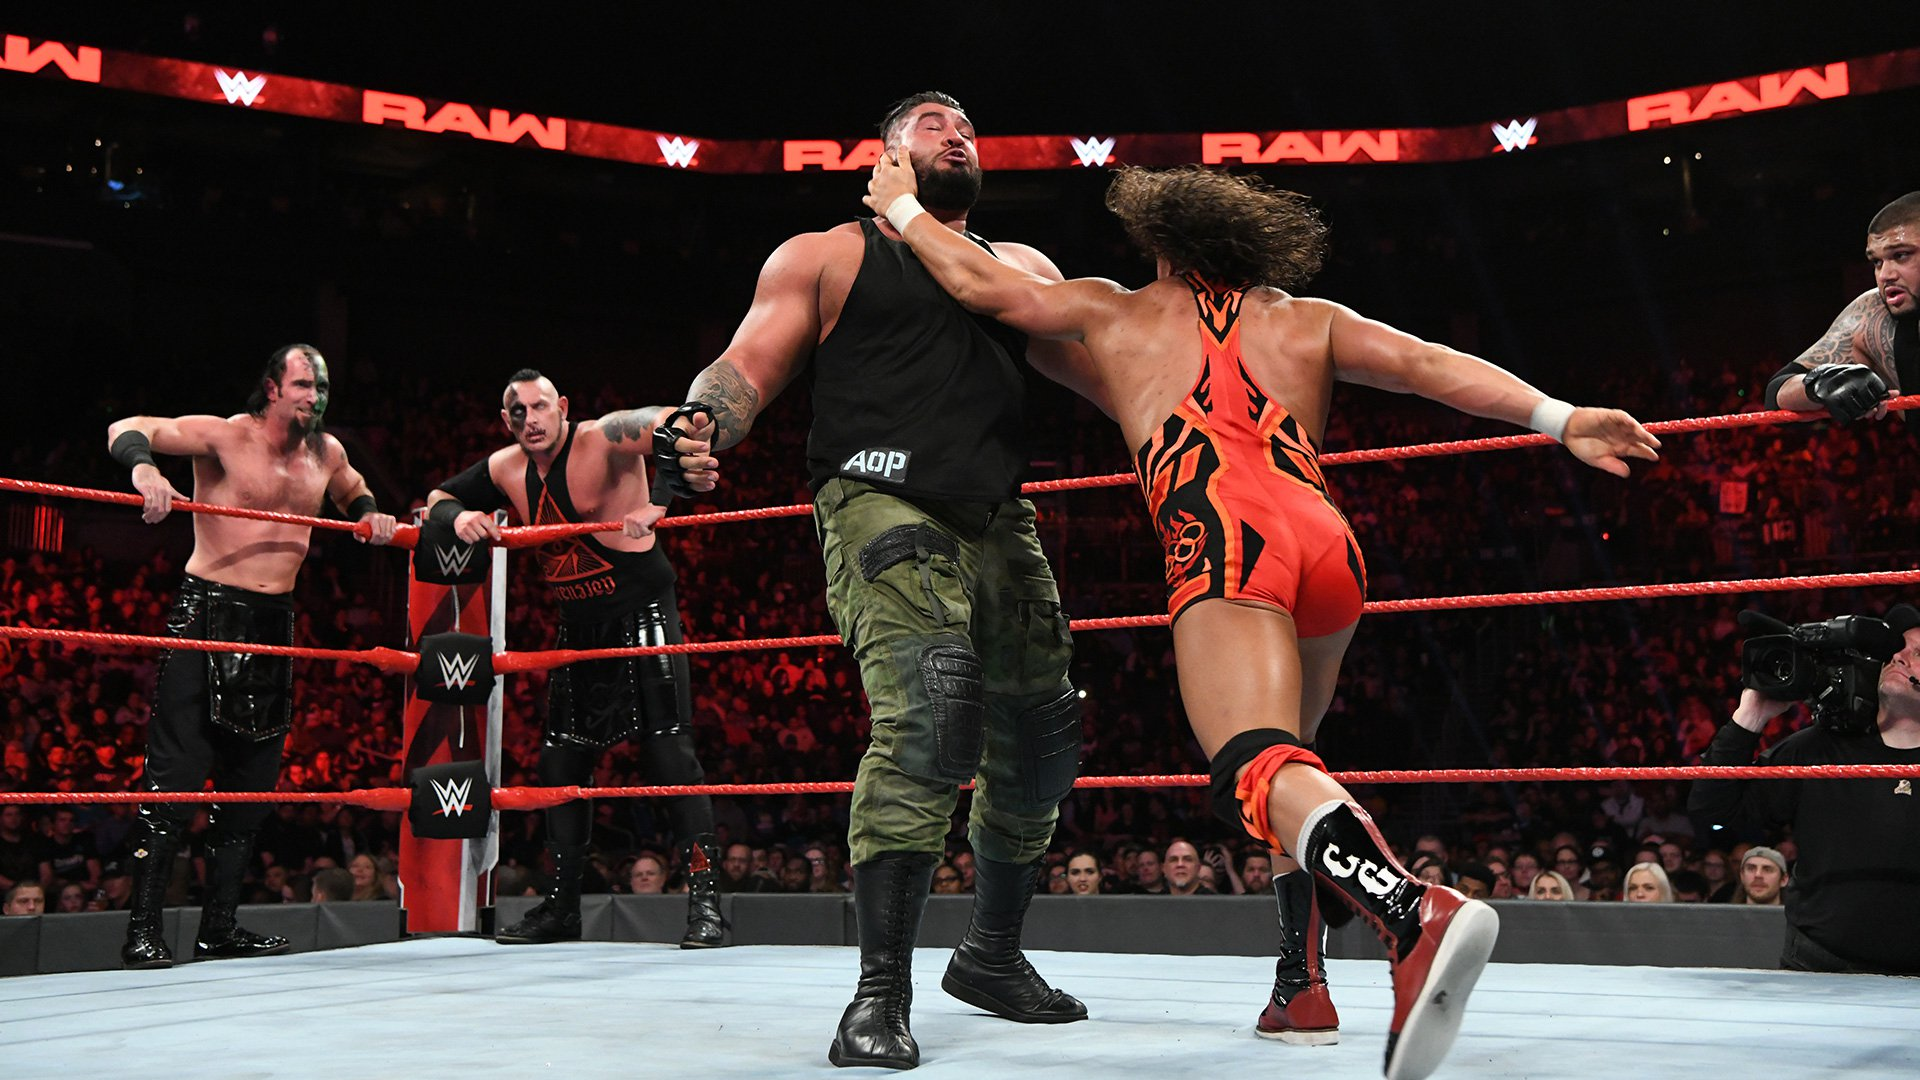 Chad Gable & Bobby Roode vs. AOP vs. The Ascension: Raw, 29 Octobre 2018